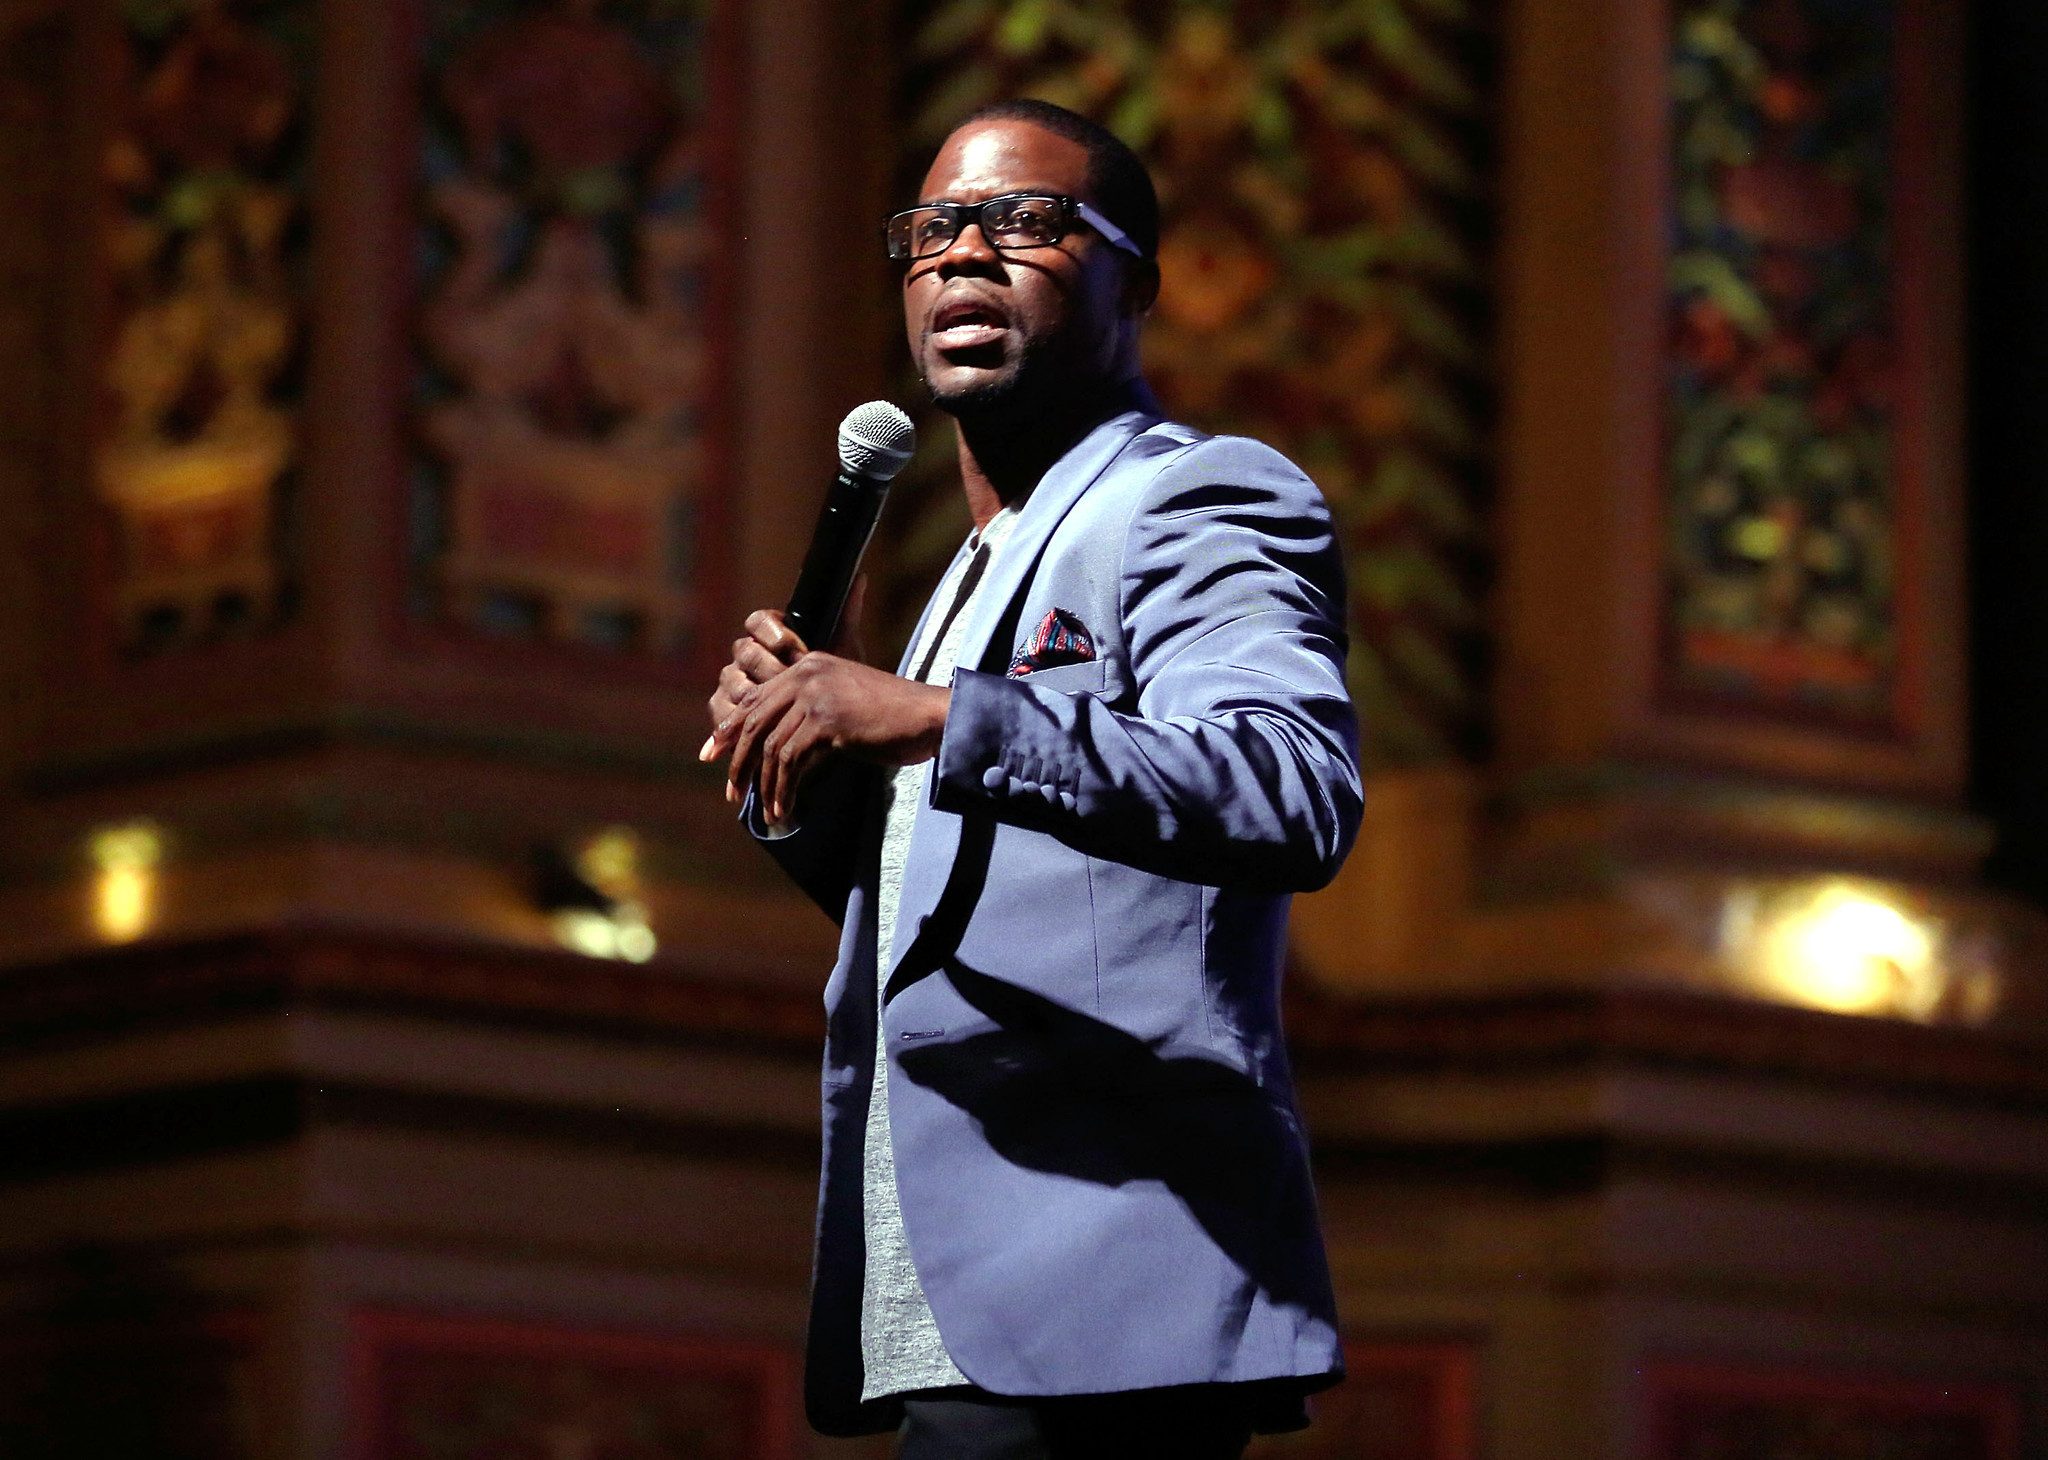 Celeb-spotting around South Florida - Kevin Hart